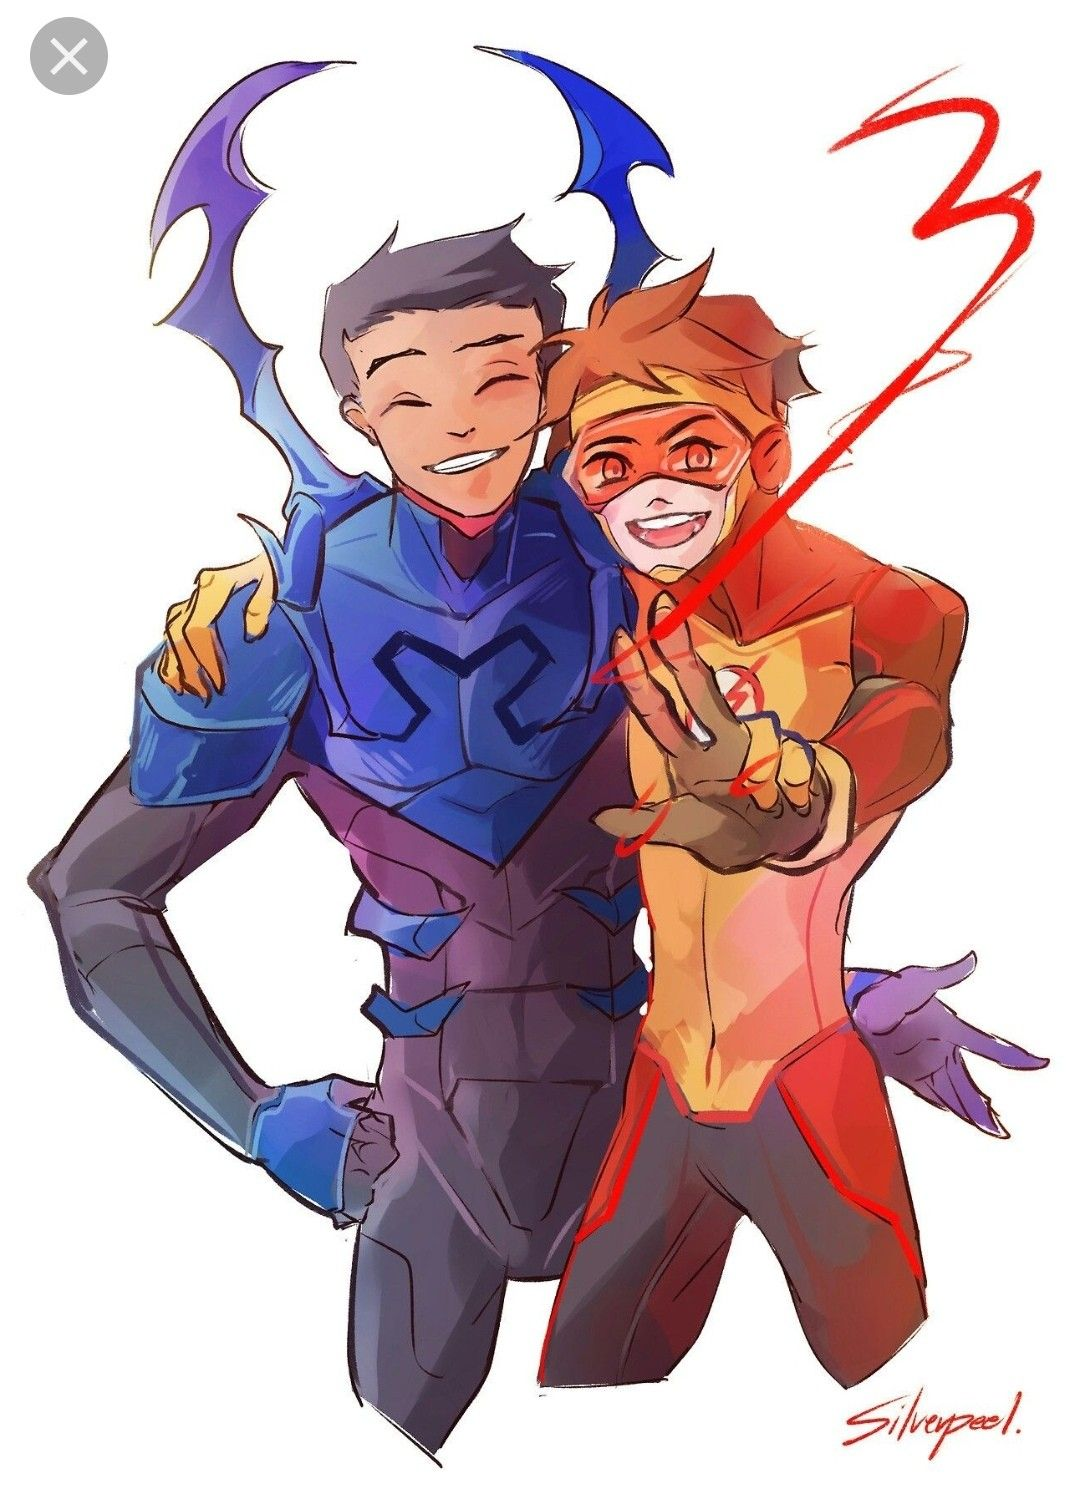 Pin By Me Kin Chung On Dc Young Justice Blue Beetle Dc Comics Art